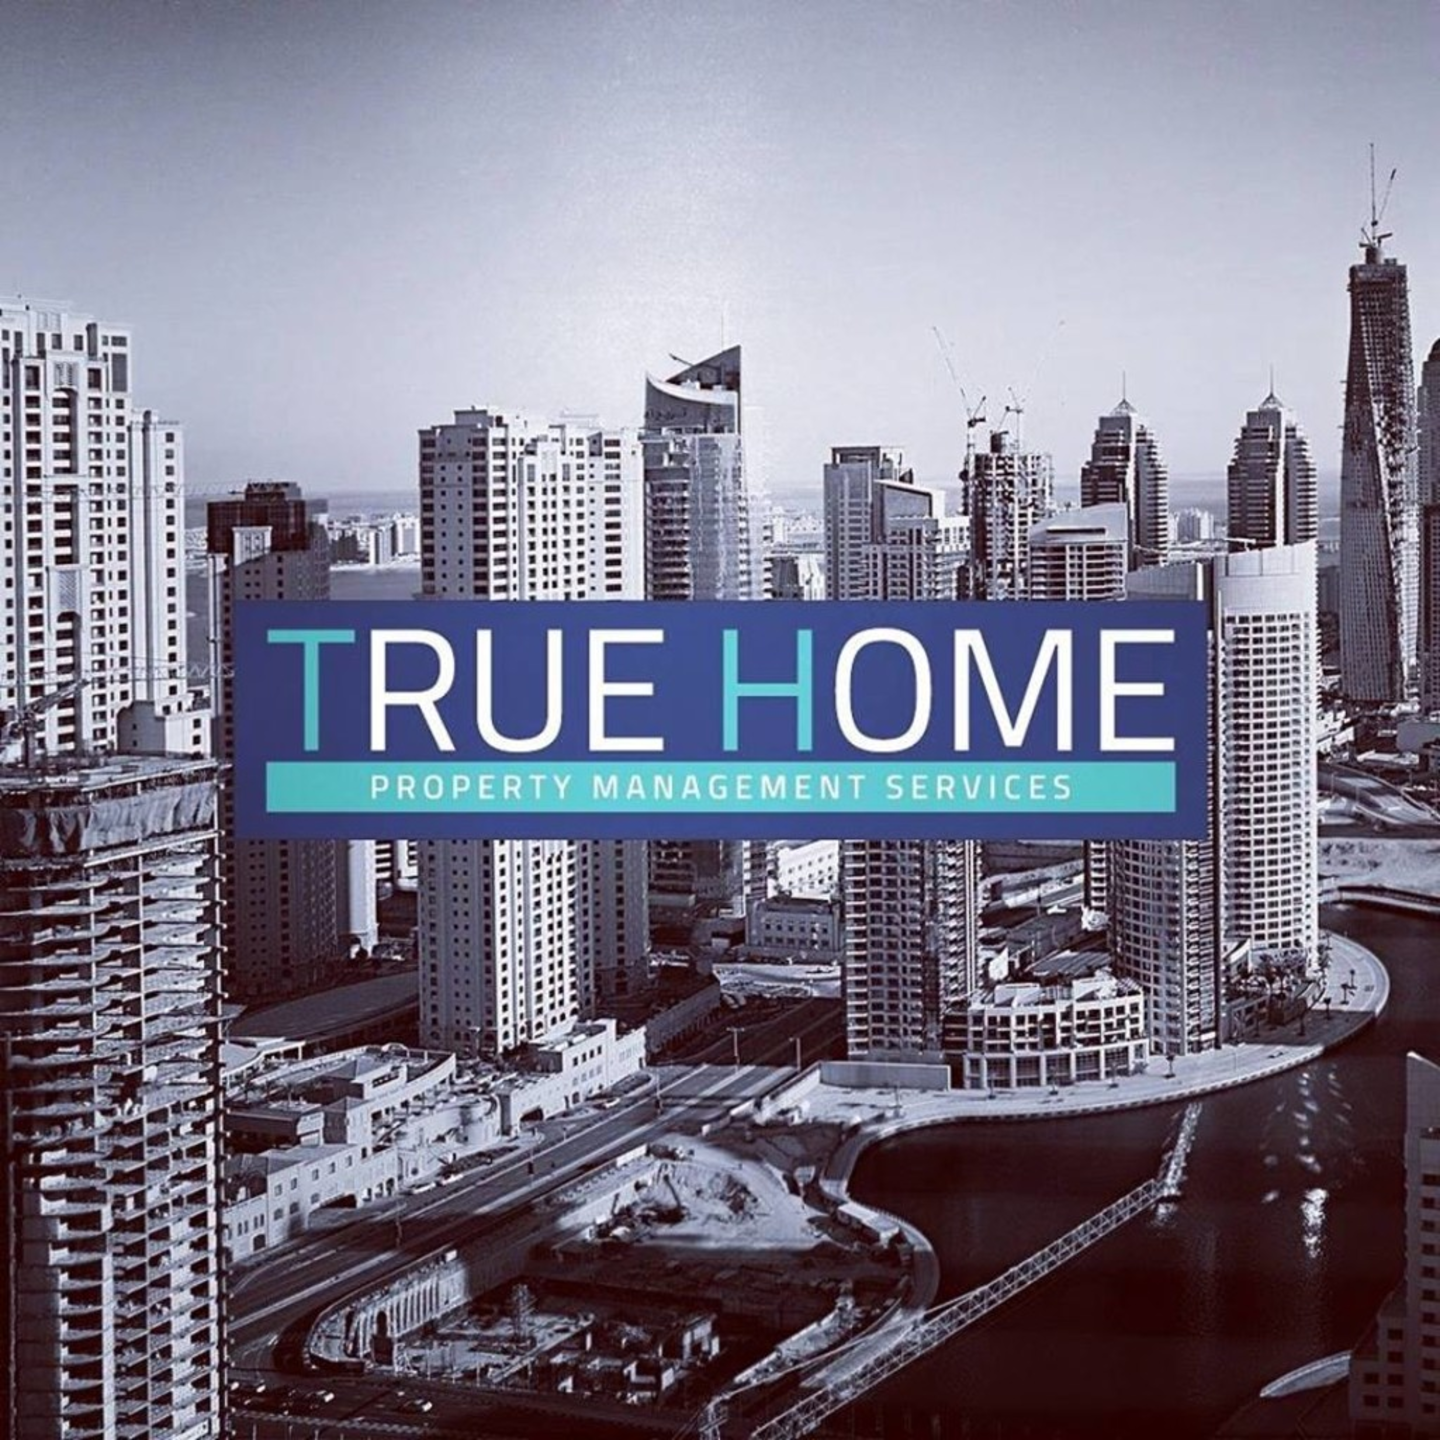 HiDubai-business-true-home-real-estate-housing-real-estate-property-management-al-qusais-industrial-2-dubai